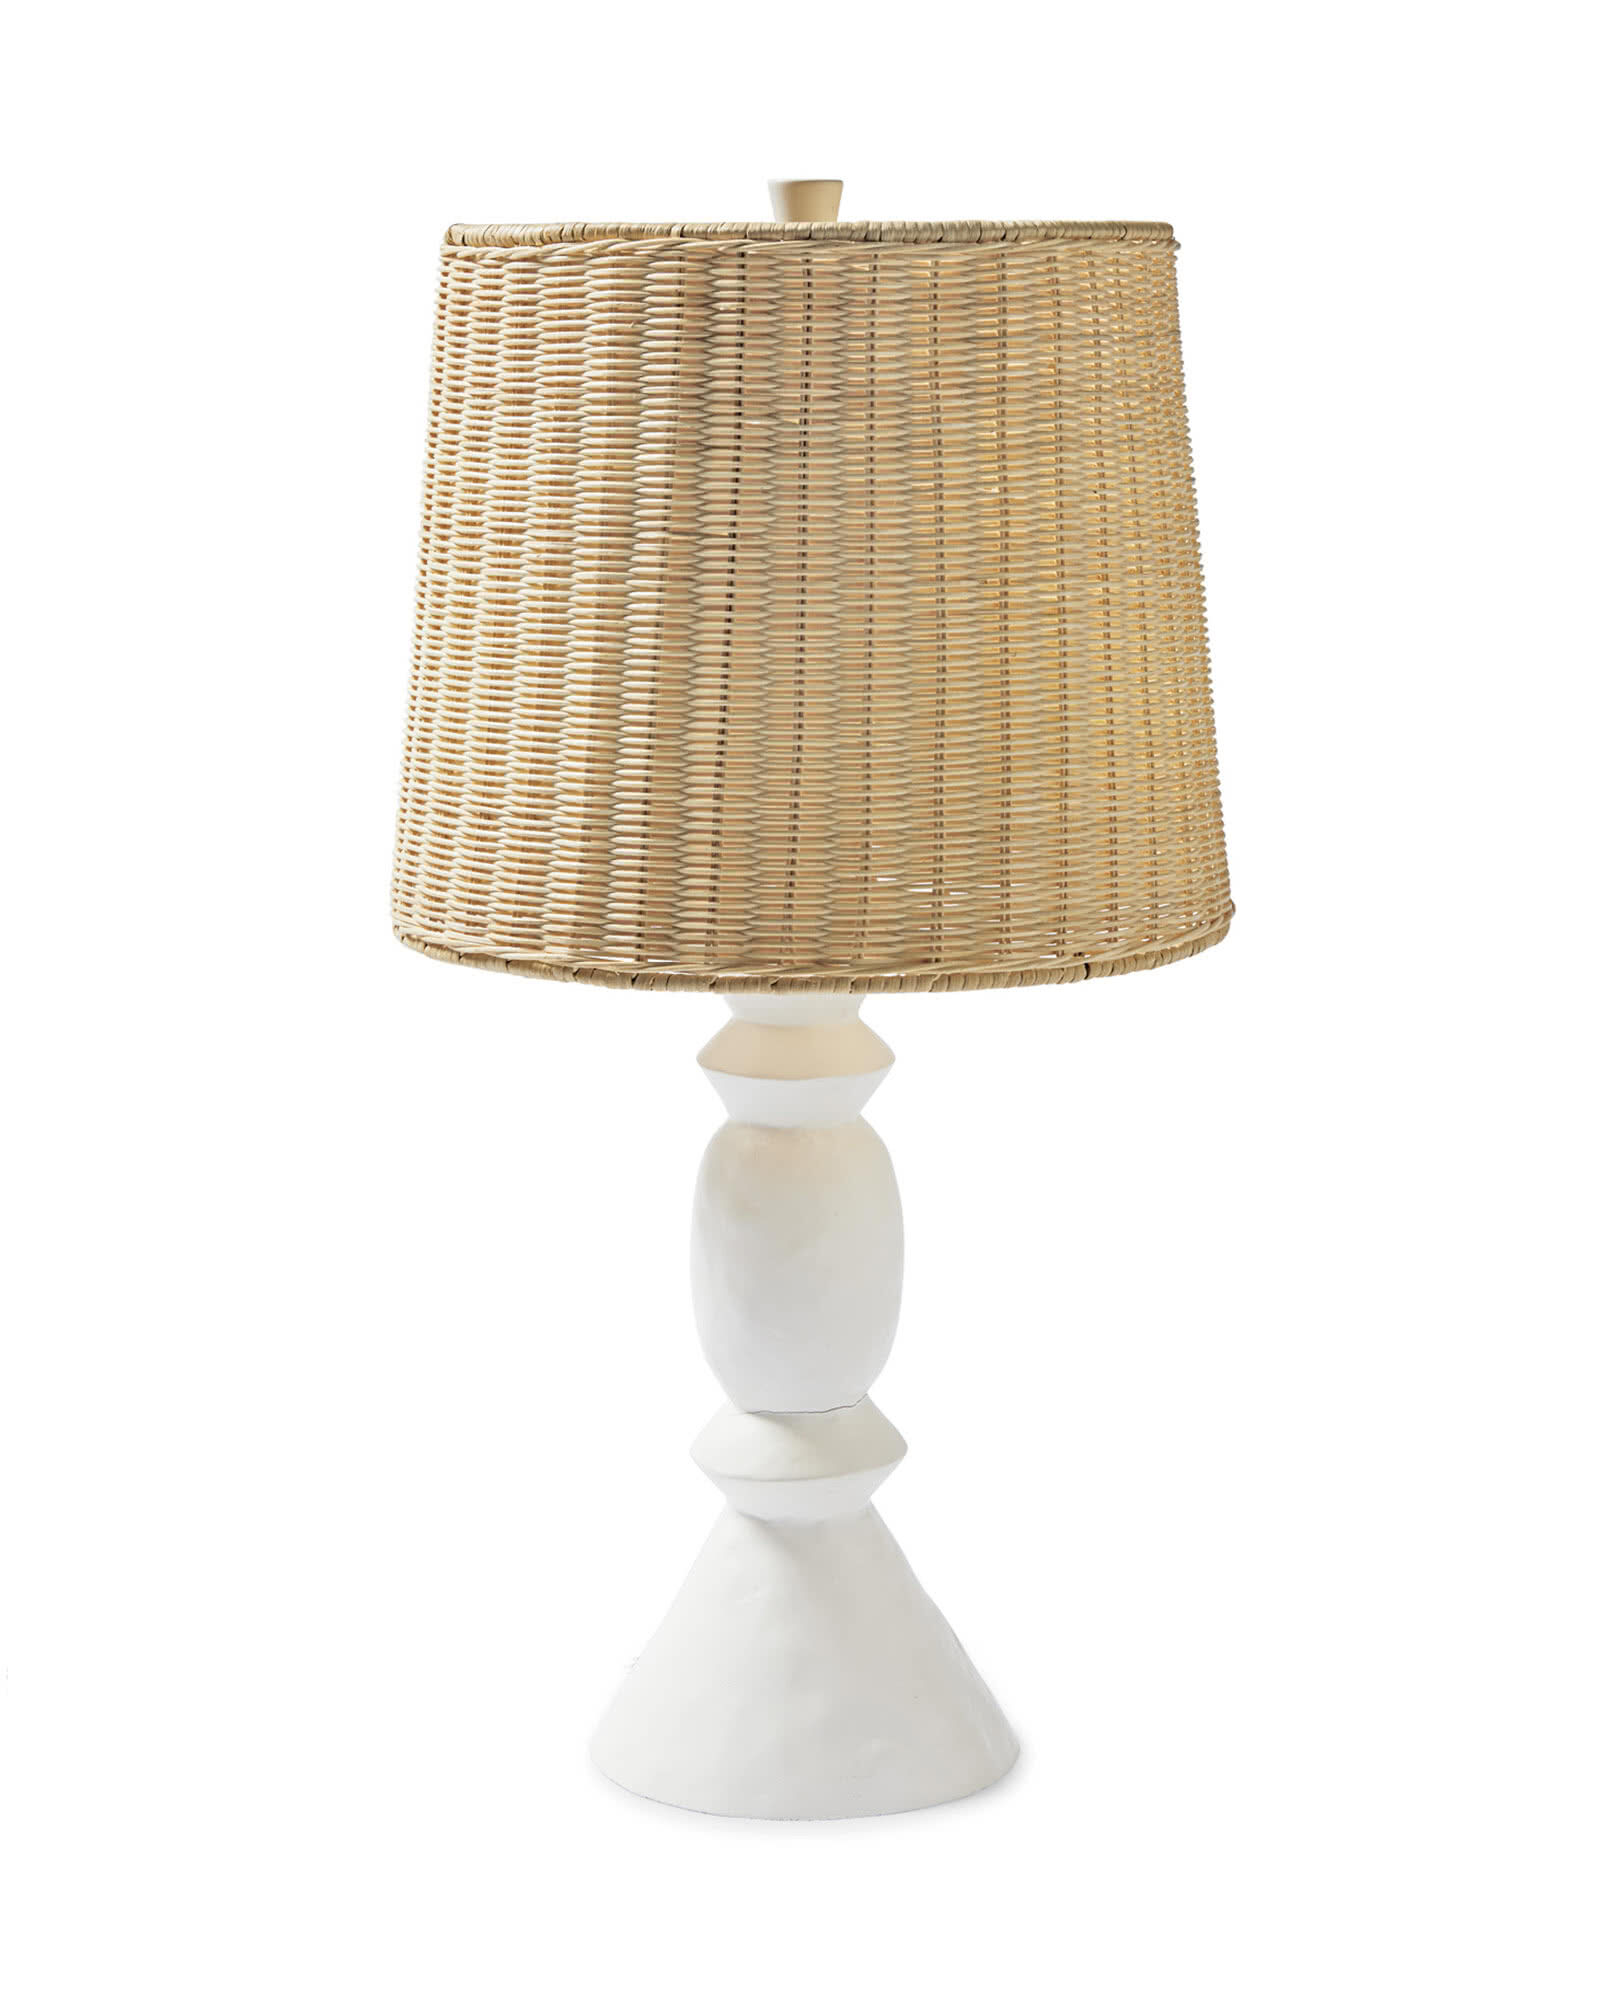 Brighton Table Lamp